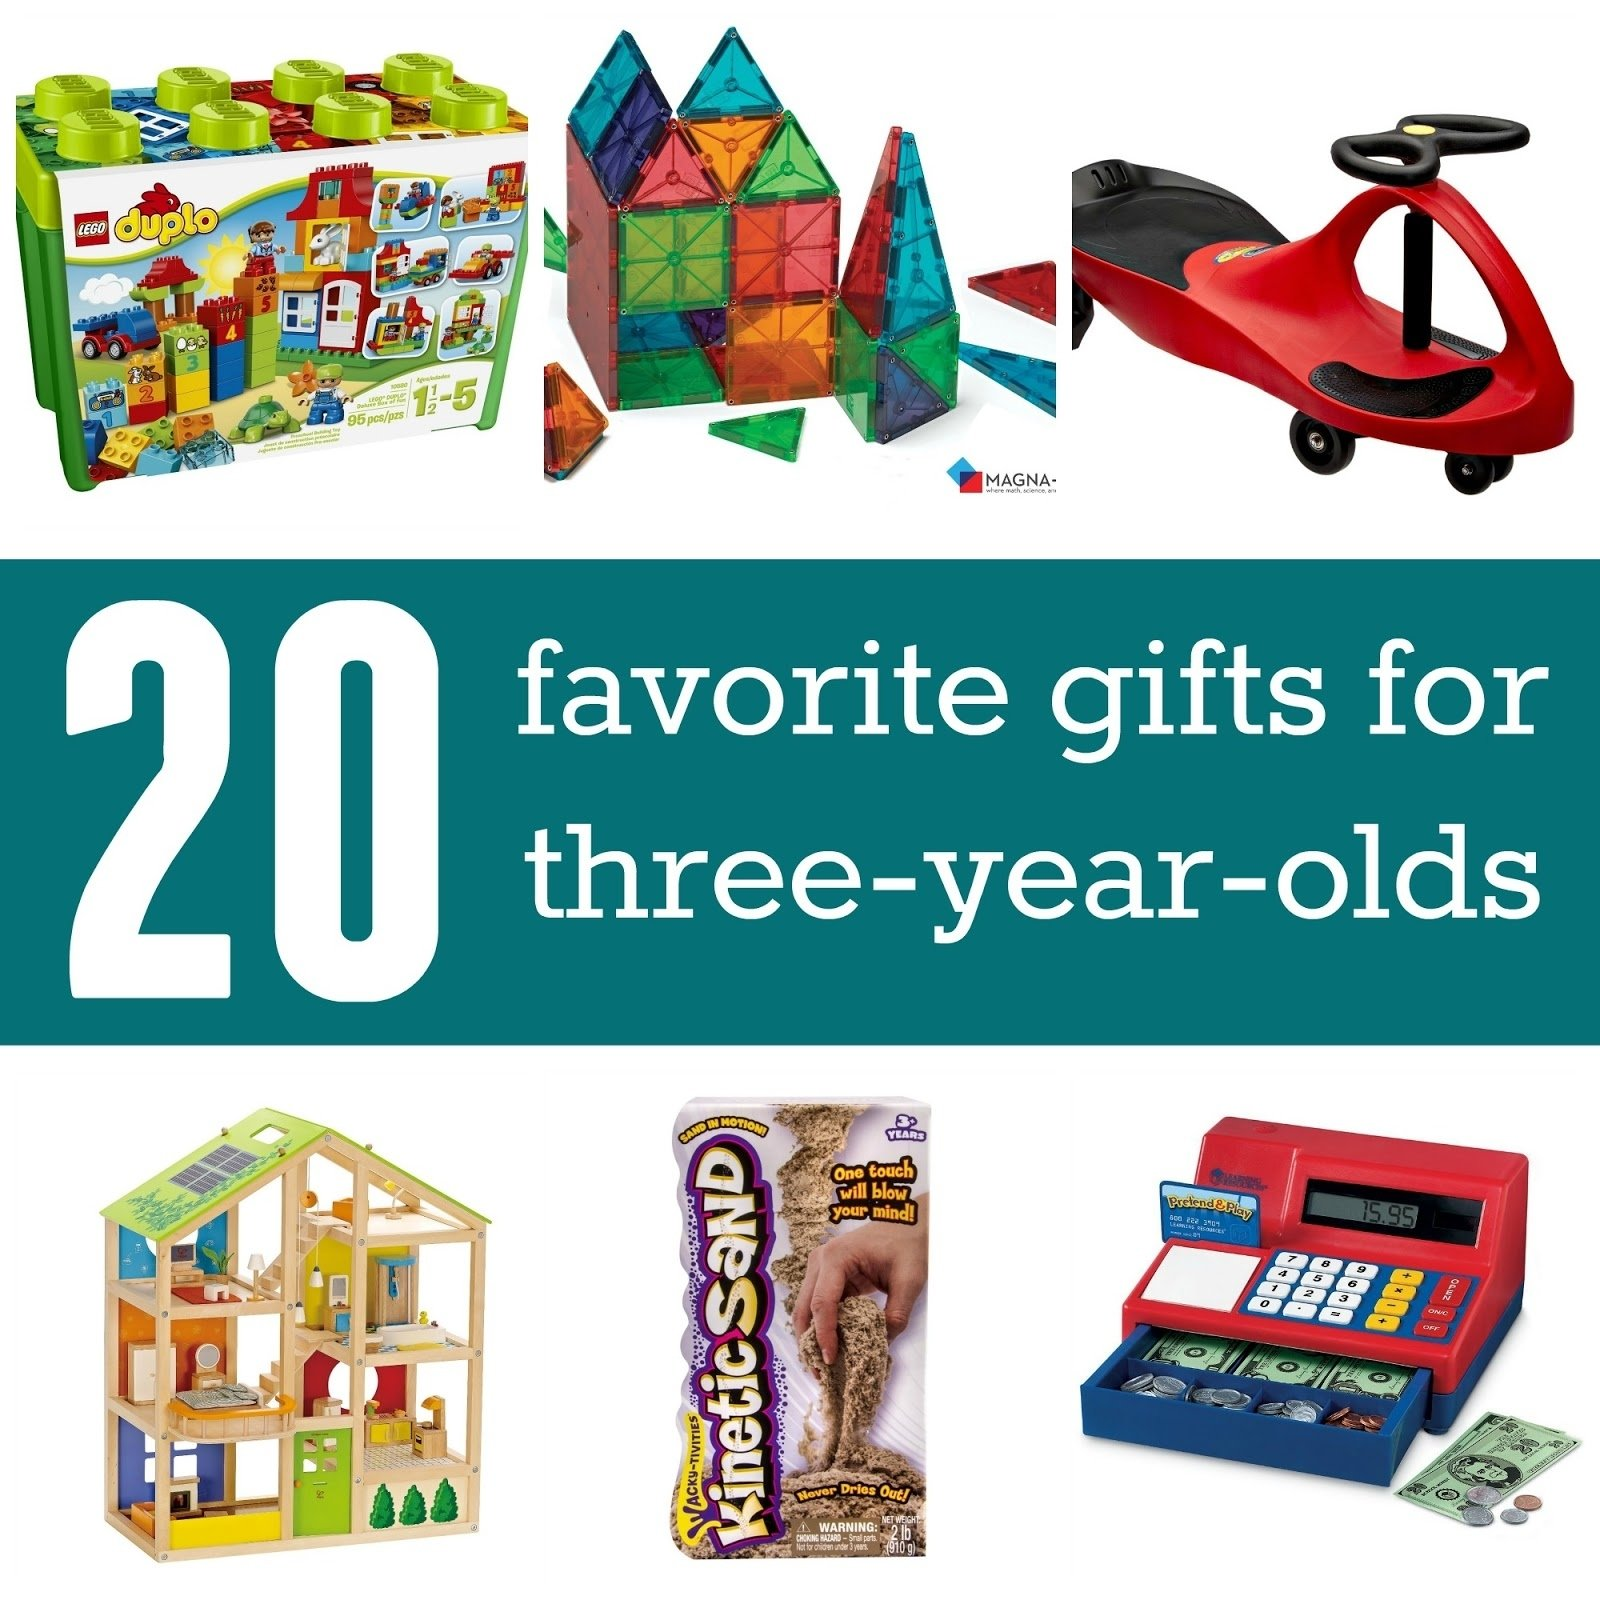 10 Cute Gift Ideas For 3 Year Olds toddler approved favorite gifts for 3 year olds 6 2021